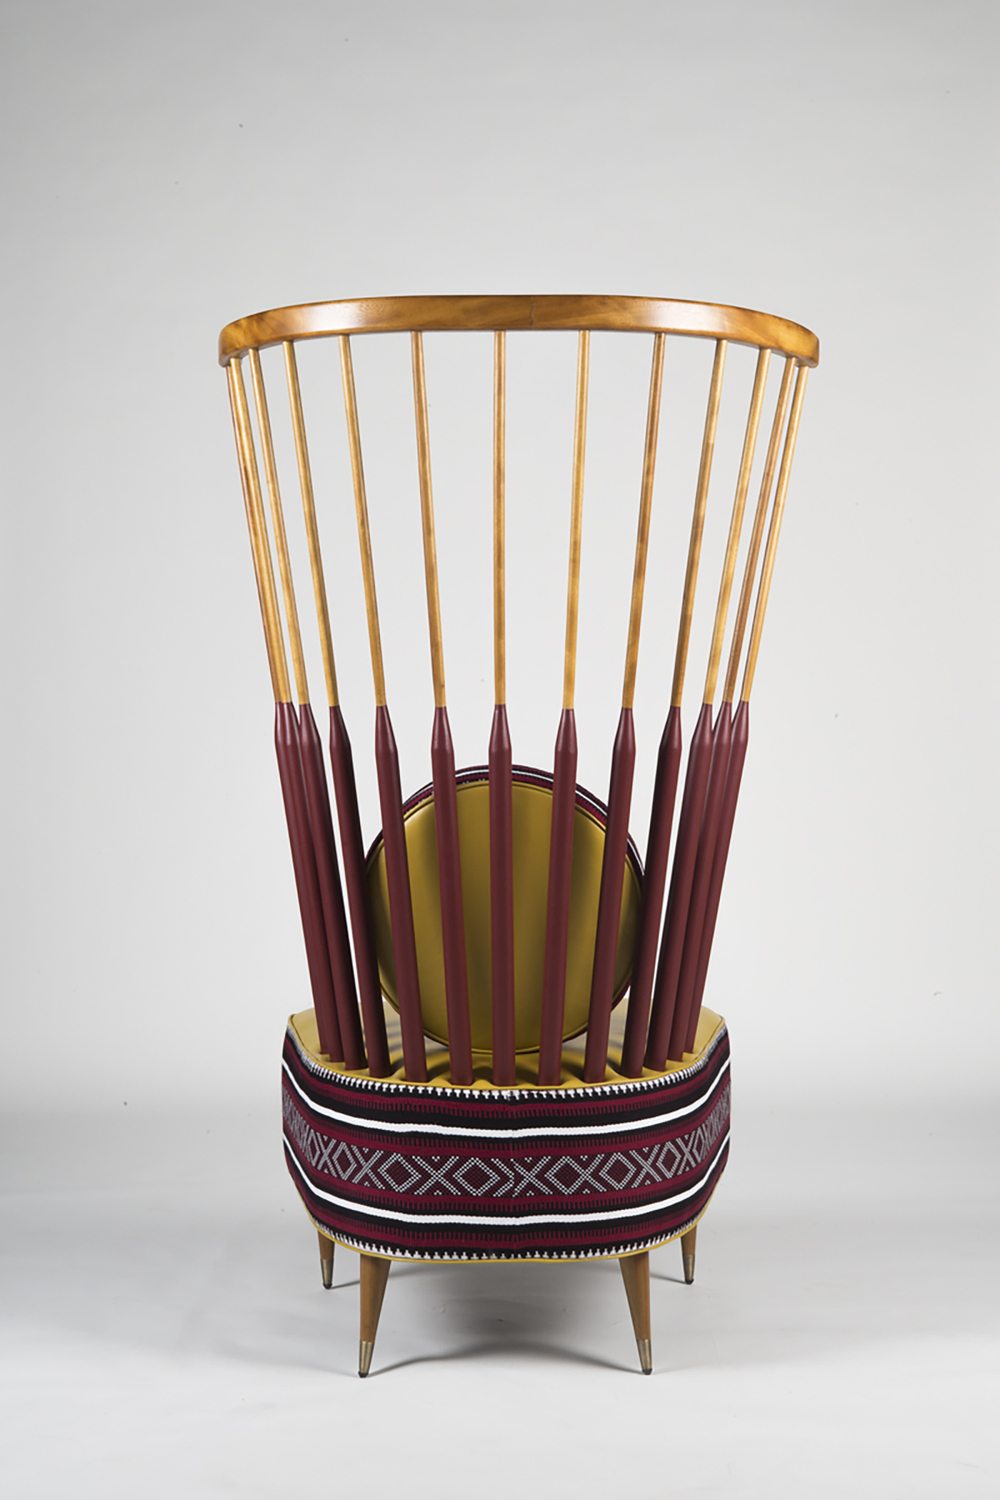 Studio MUJU -Moza Chair 5.jpg